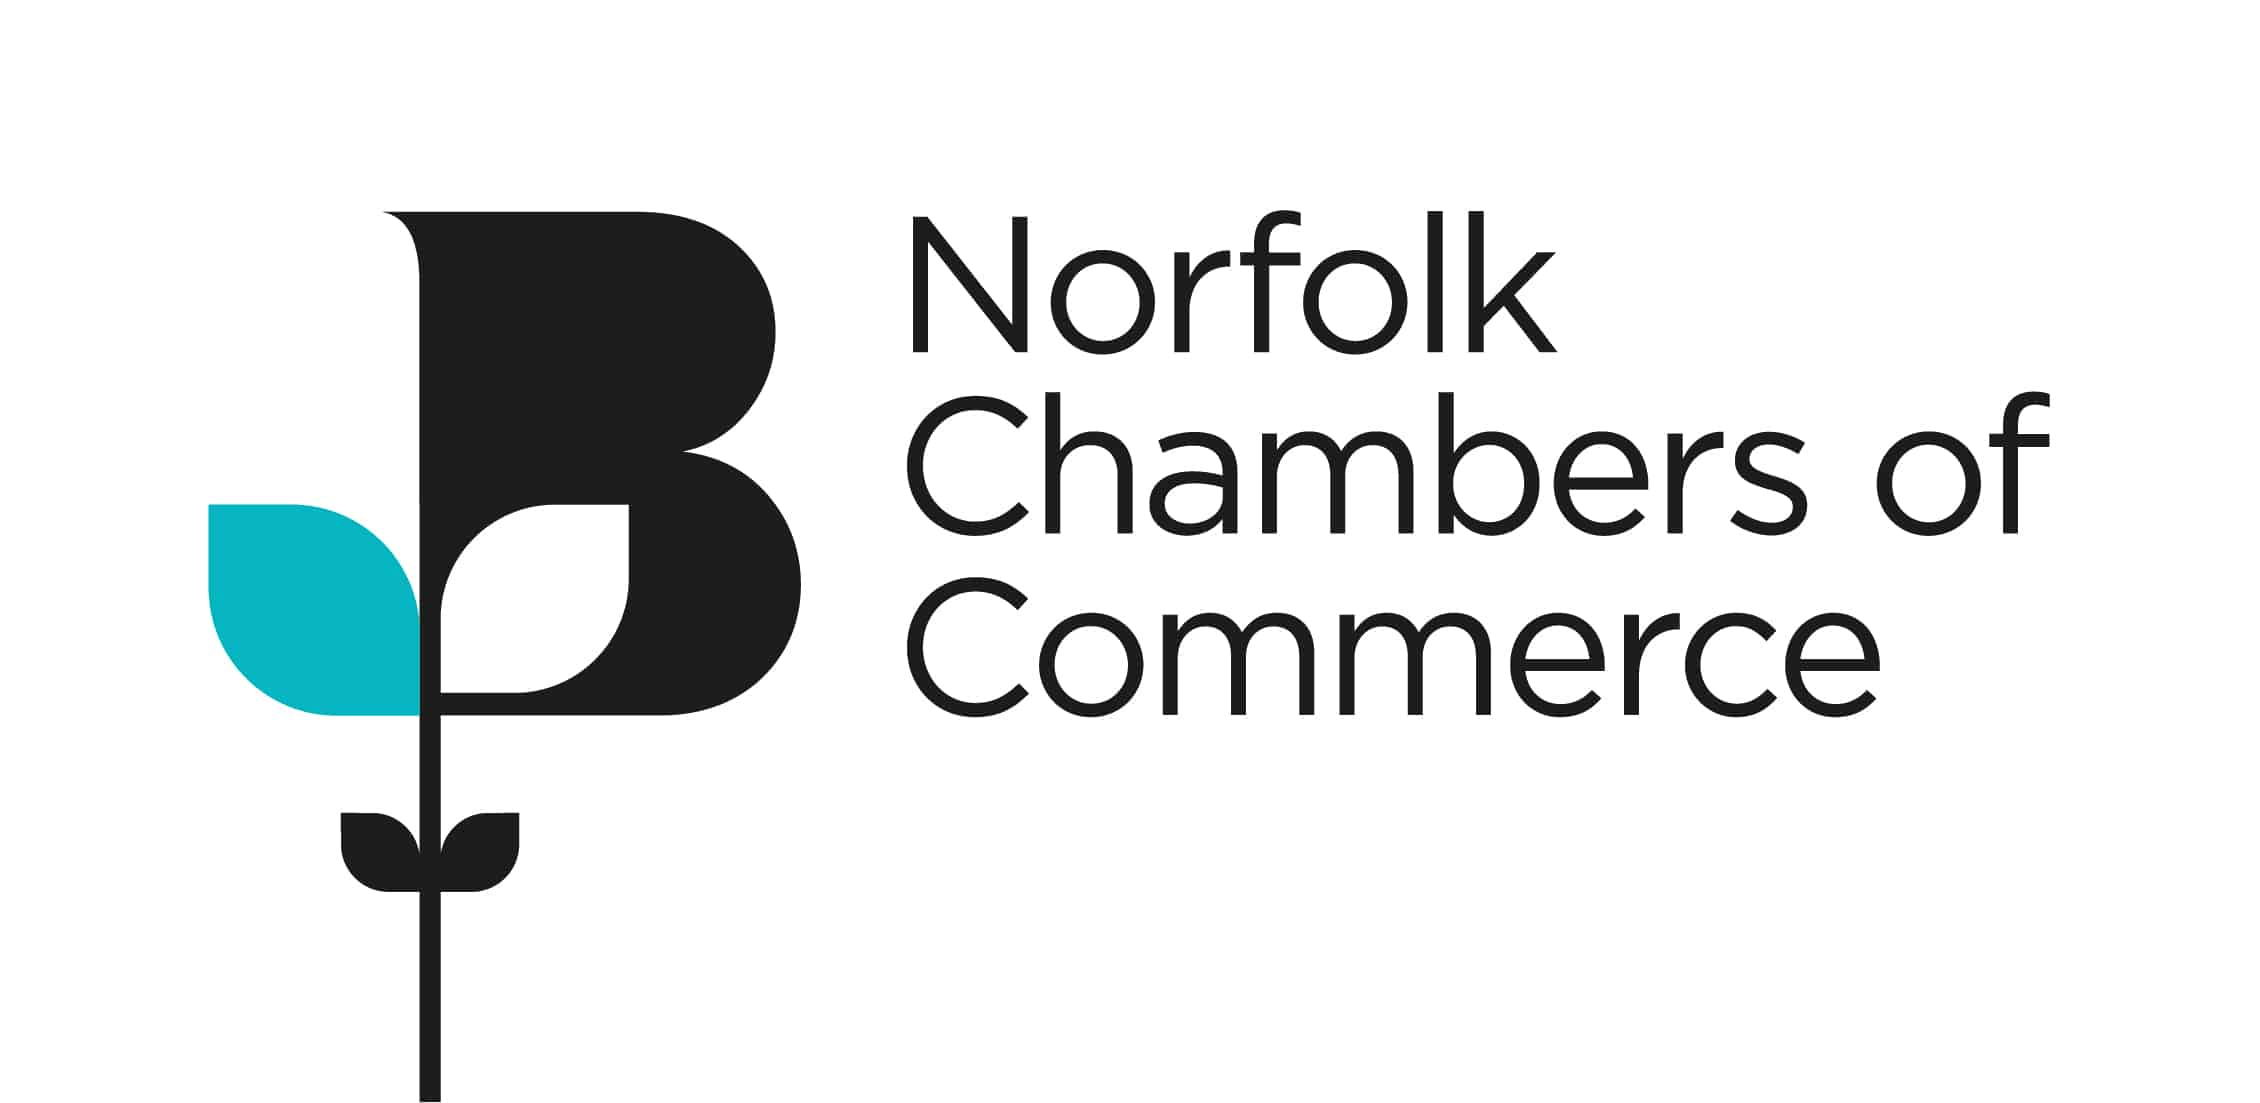 Norfolk Chambers of Commerce logo